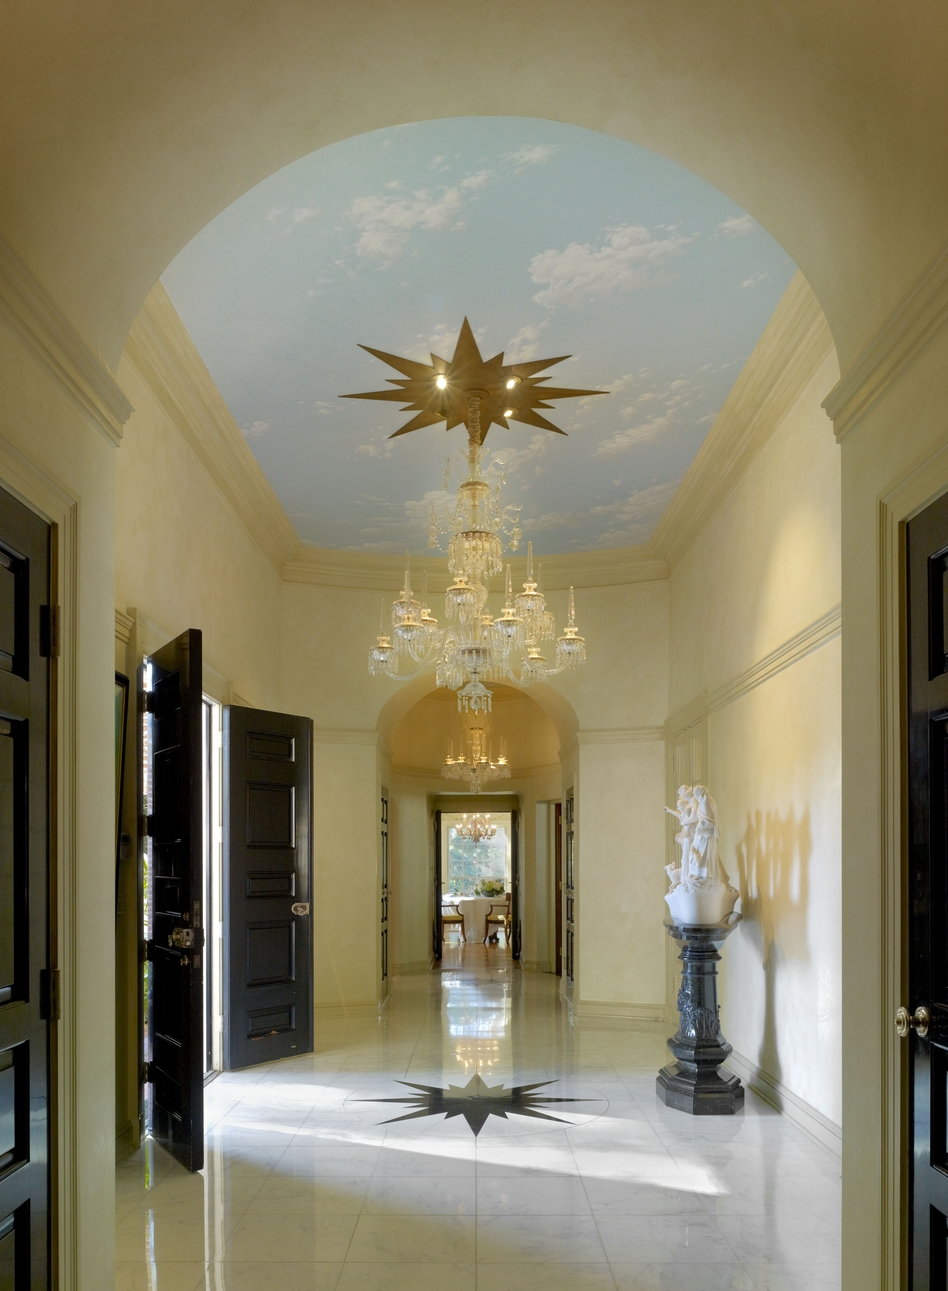 Williams thought a home's entrance should make a statement. In this Colonial Revival residence, designed in Beverly Hills for the Landis family in 1955, the narrow foyer has large double doors that swing open to reveal a high ceiling covered in a trompe l'oeil sky, and a lavish chandelier hung from a starburst medallion. The medallion's design is repeated on the marble floor. (Copyright Benny Chan)